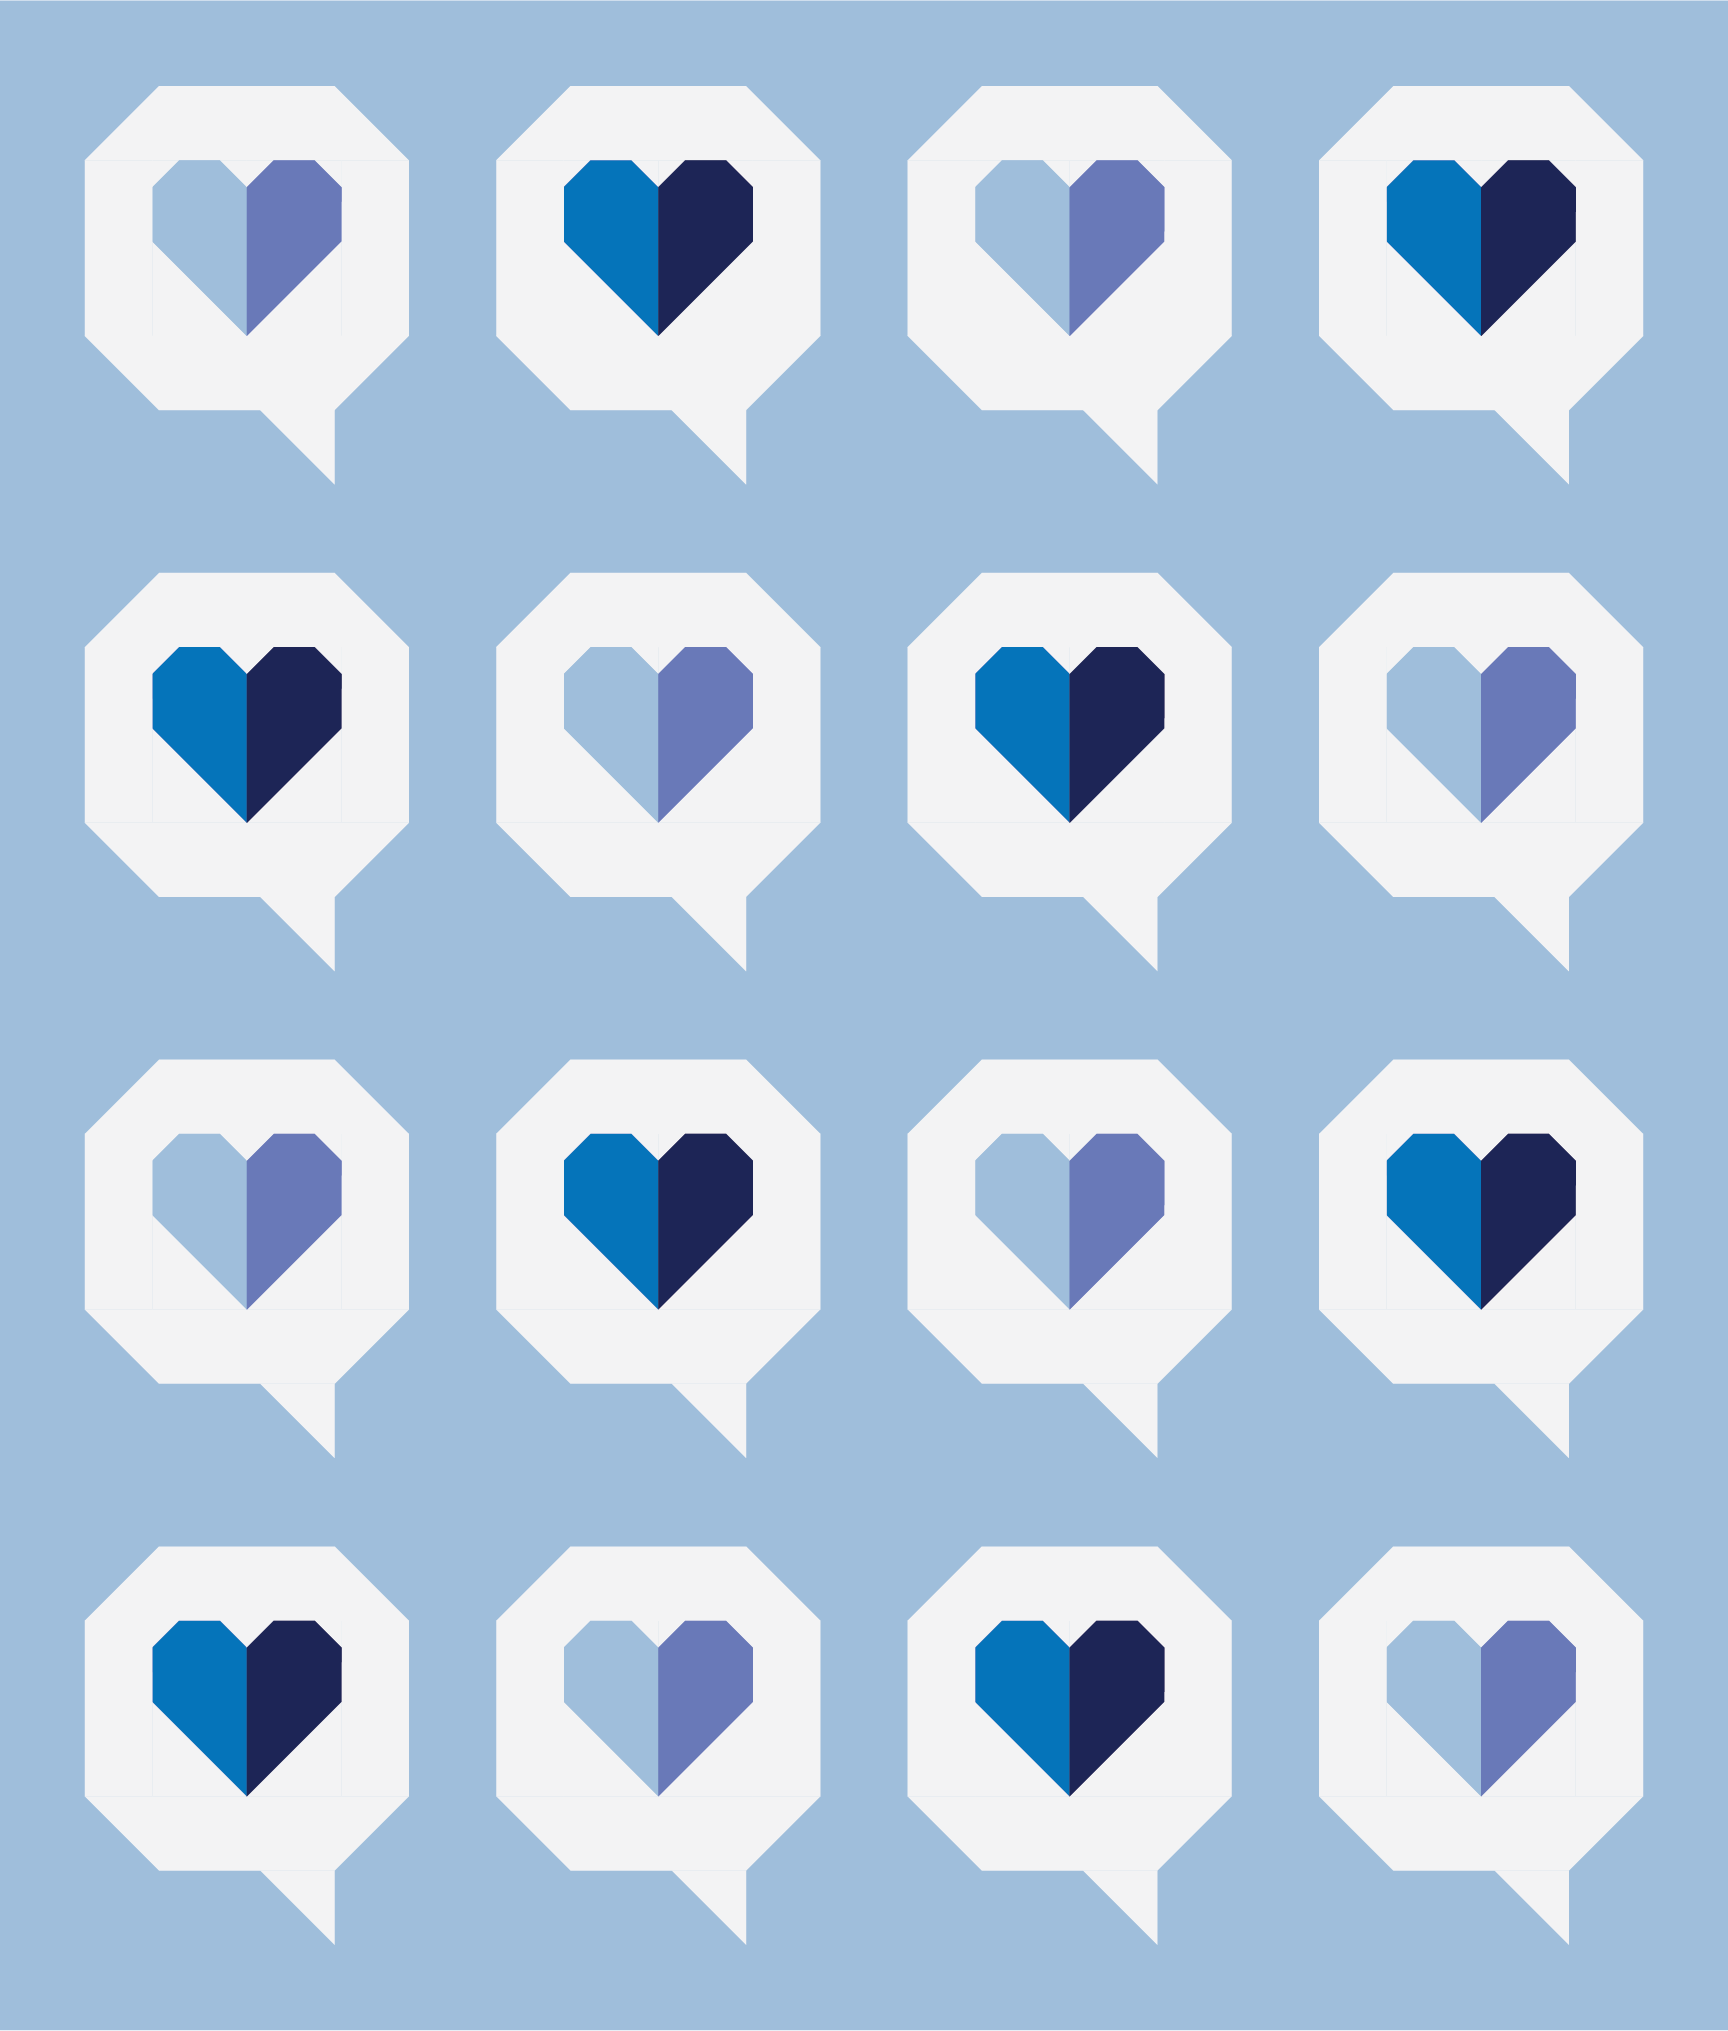 I Heart You Quilt by Then Came June: Blue Cyan version by Sewfinity